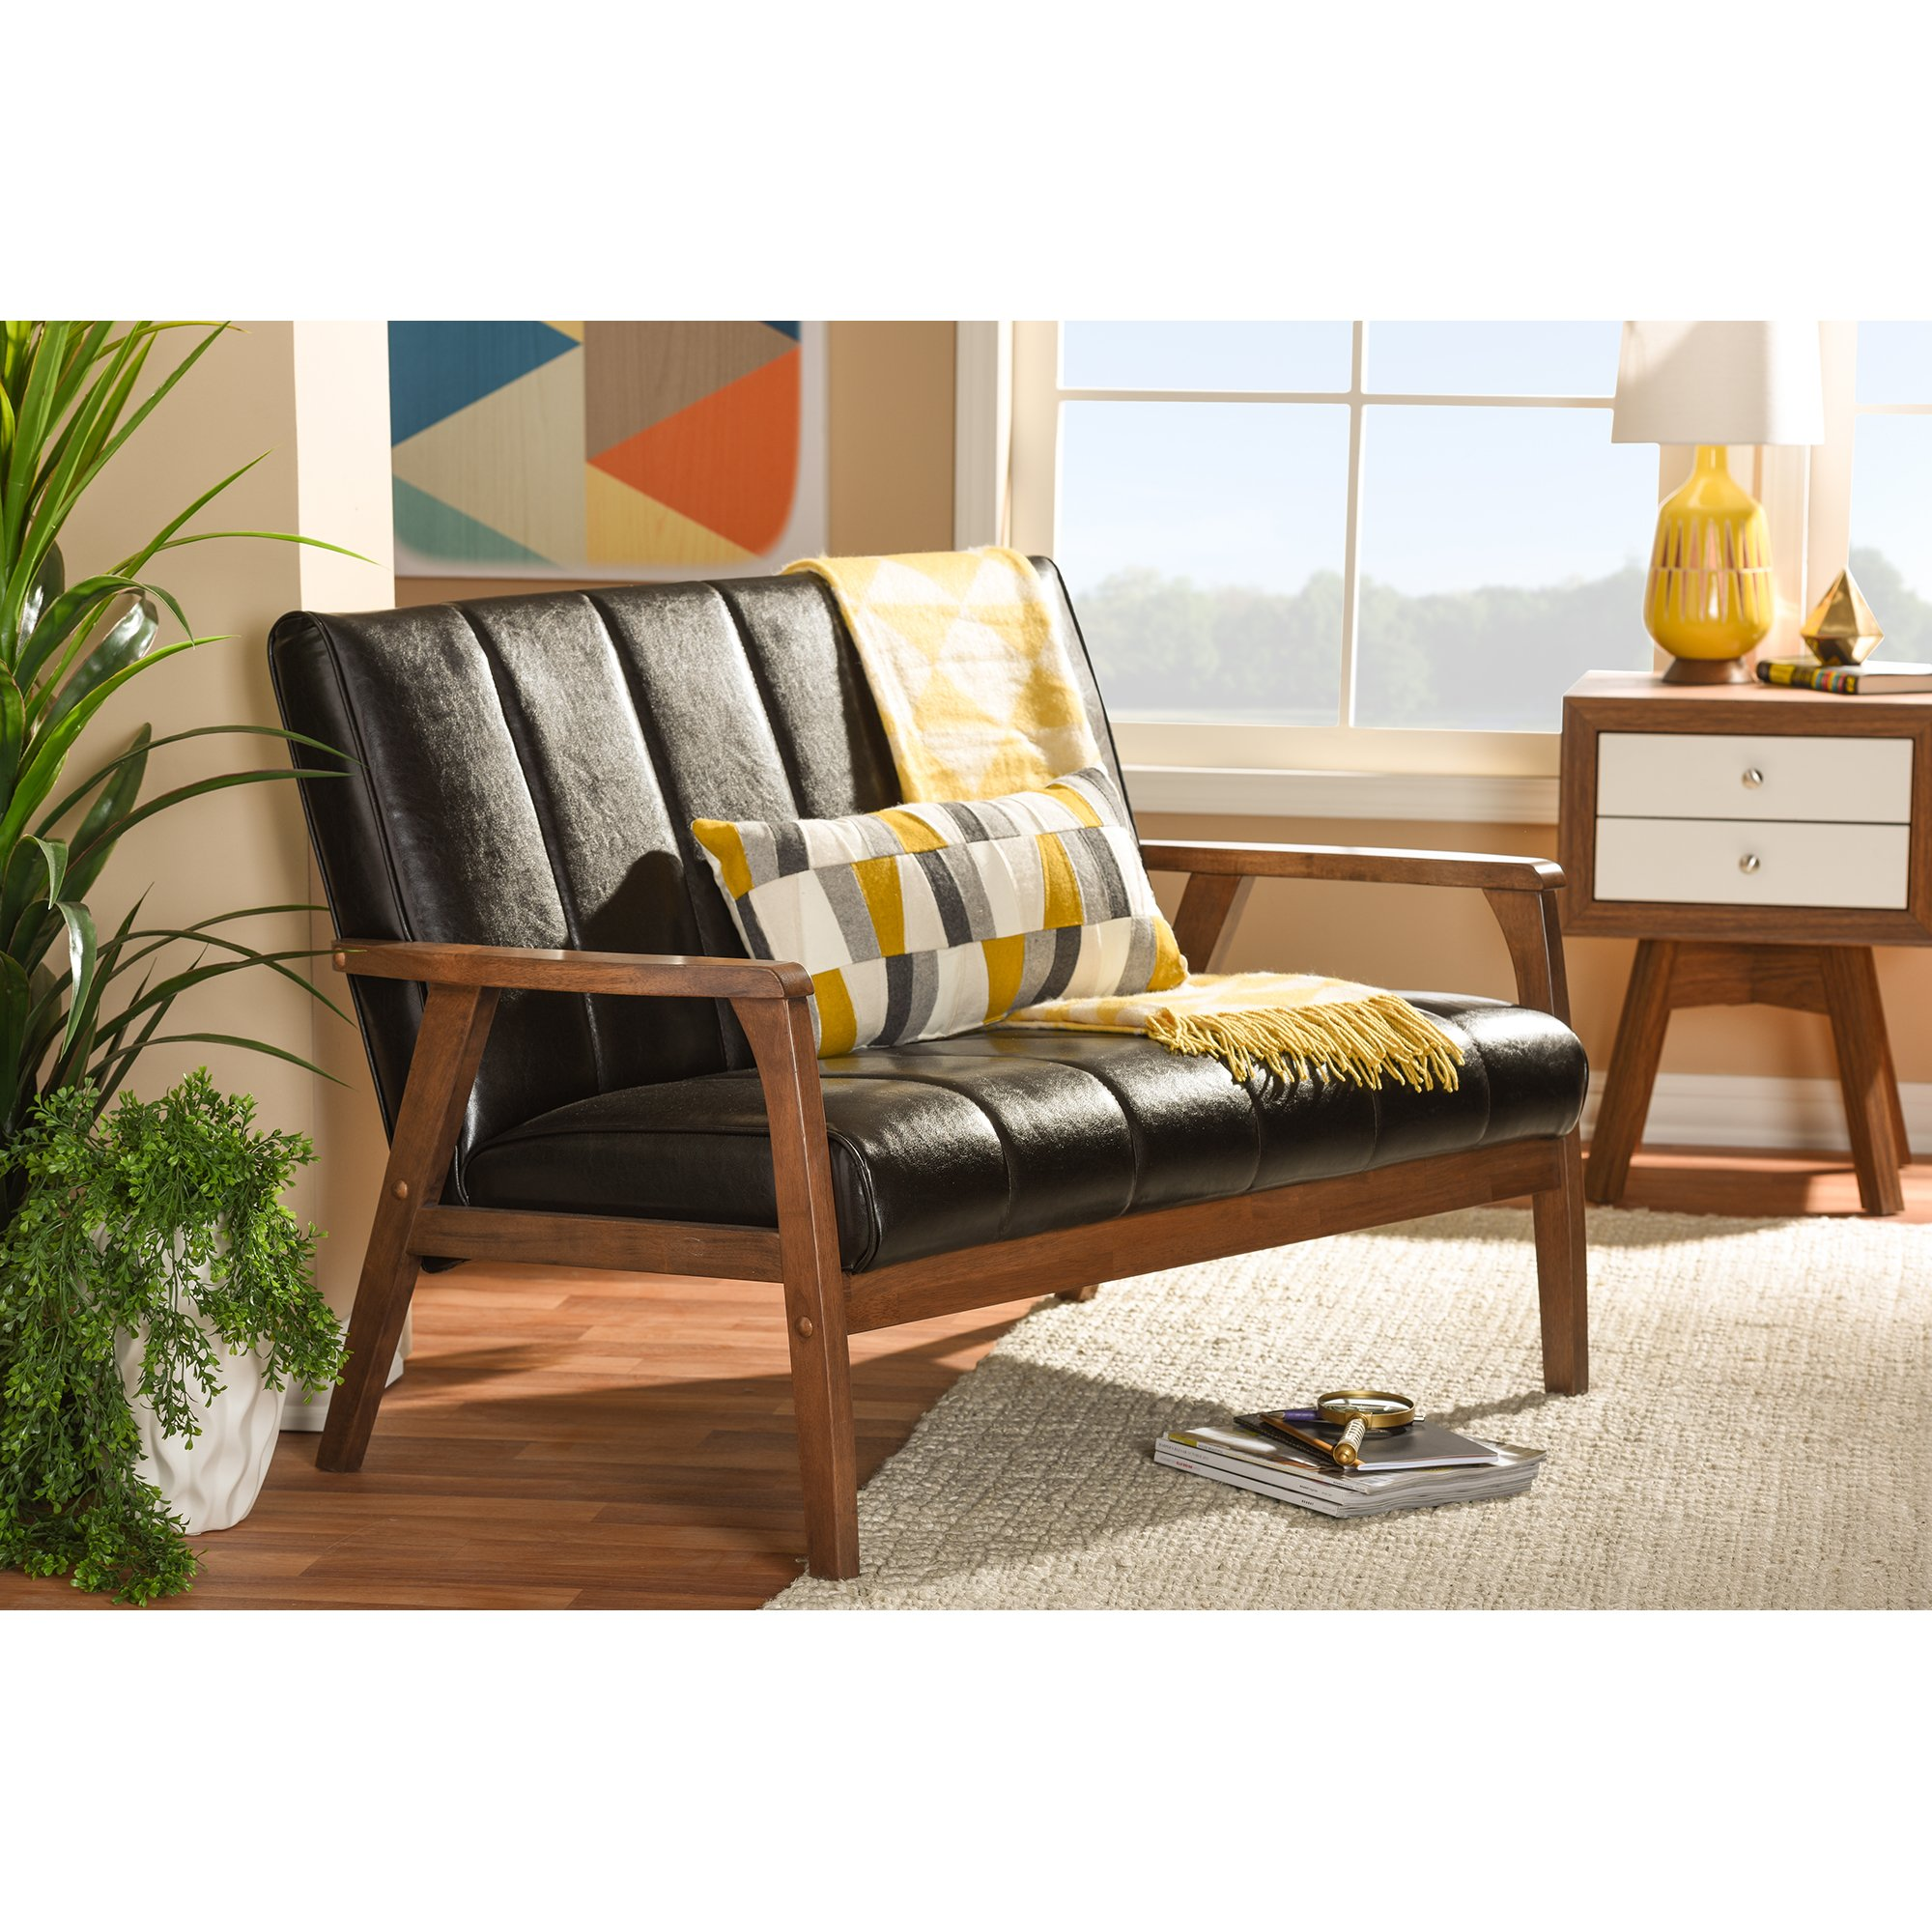 Baxton Studio Nikko Mid-century Modern Scandinavian Style Dark Brown Faux Leather Wooden 2-Seater Loveseat by Baxton Furniture Studios (Image #5)